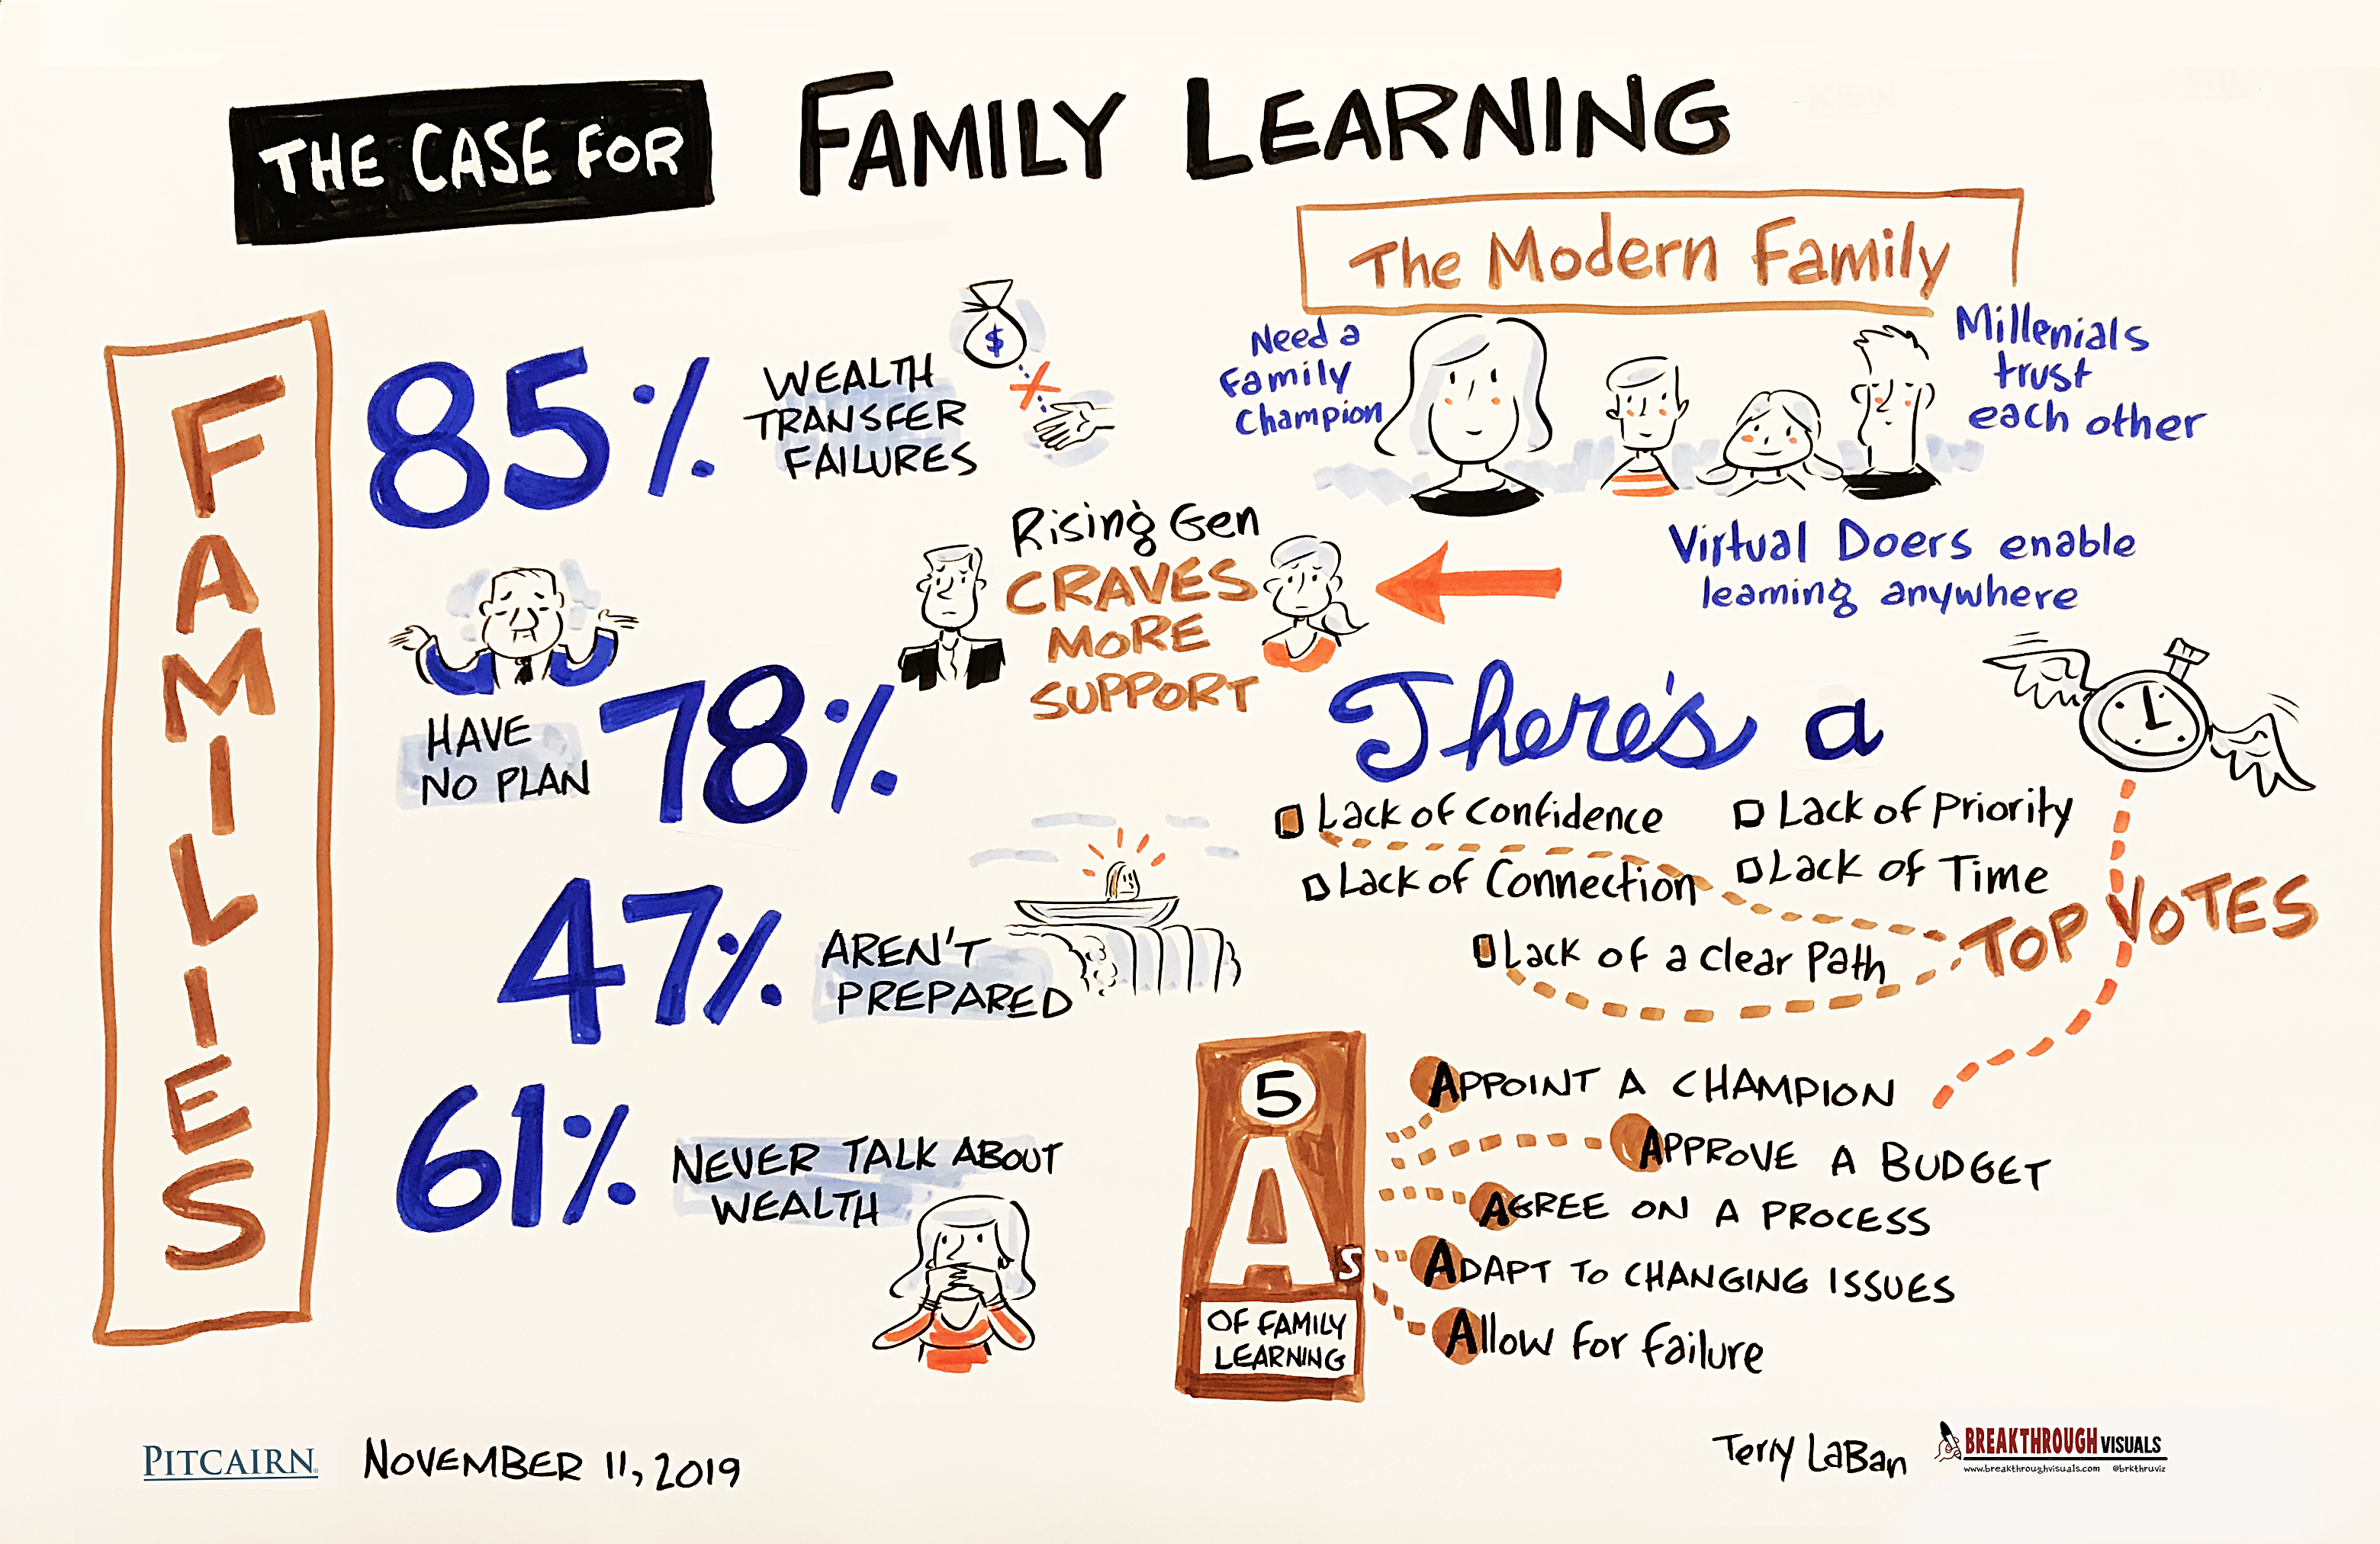 The Case for Family Learning